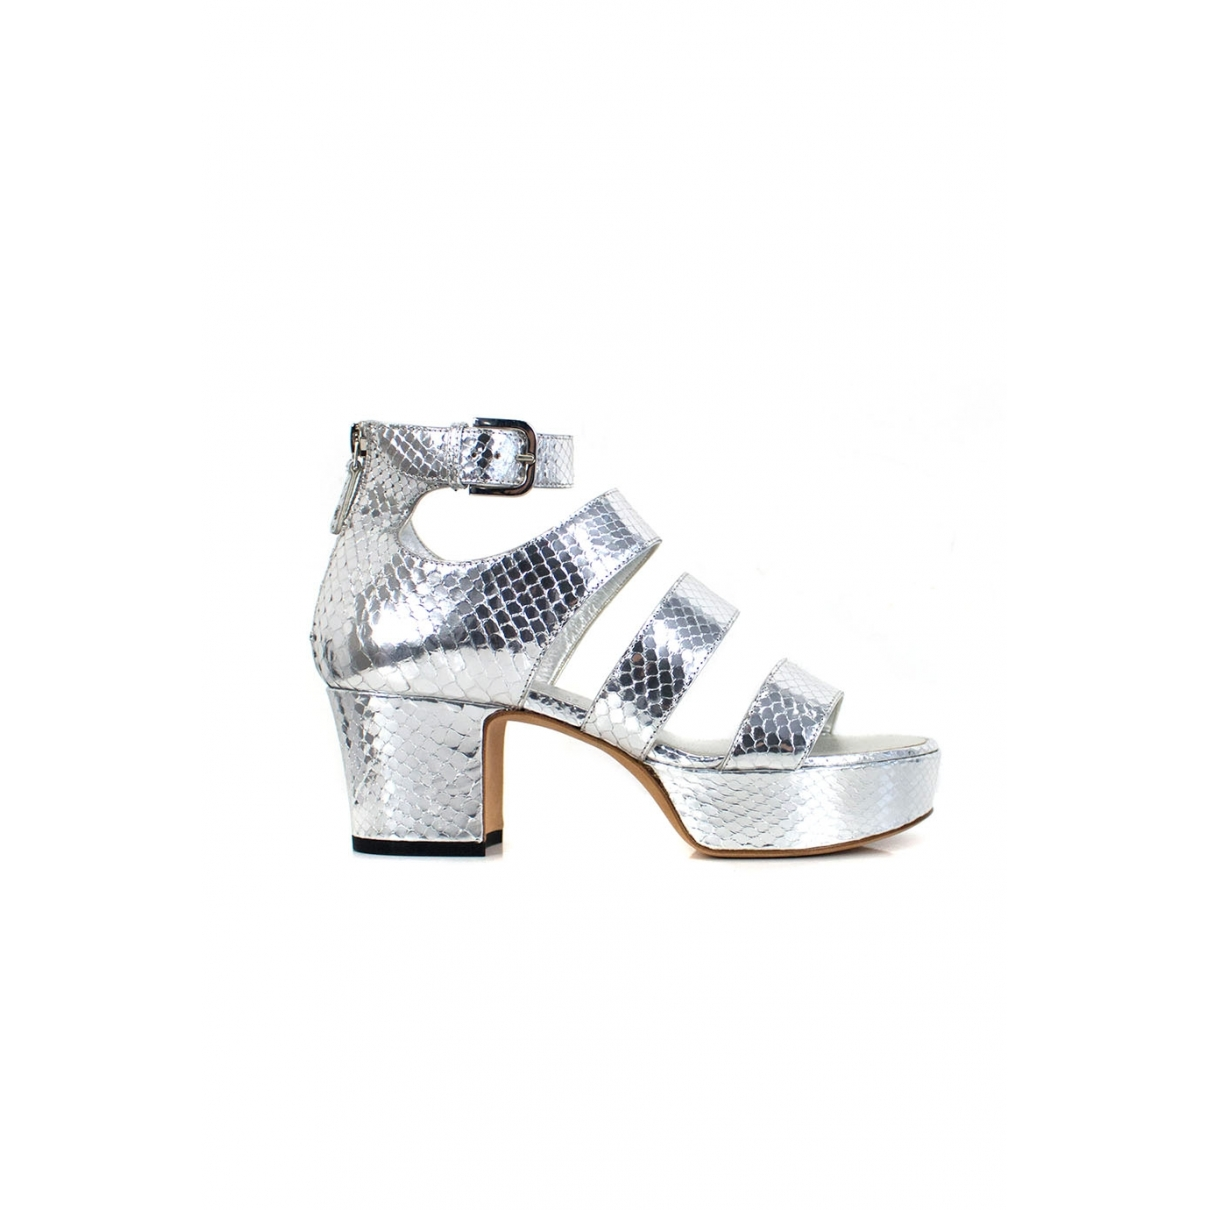 Chanel \N Silver Leather Sandals for Women 35.5 EU